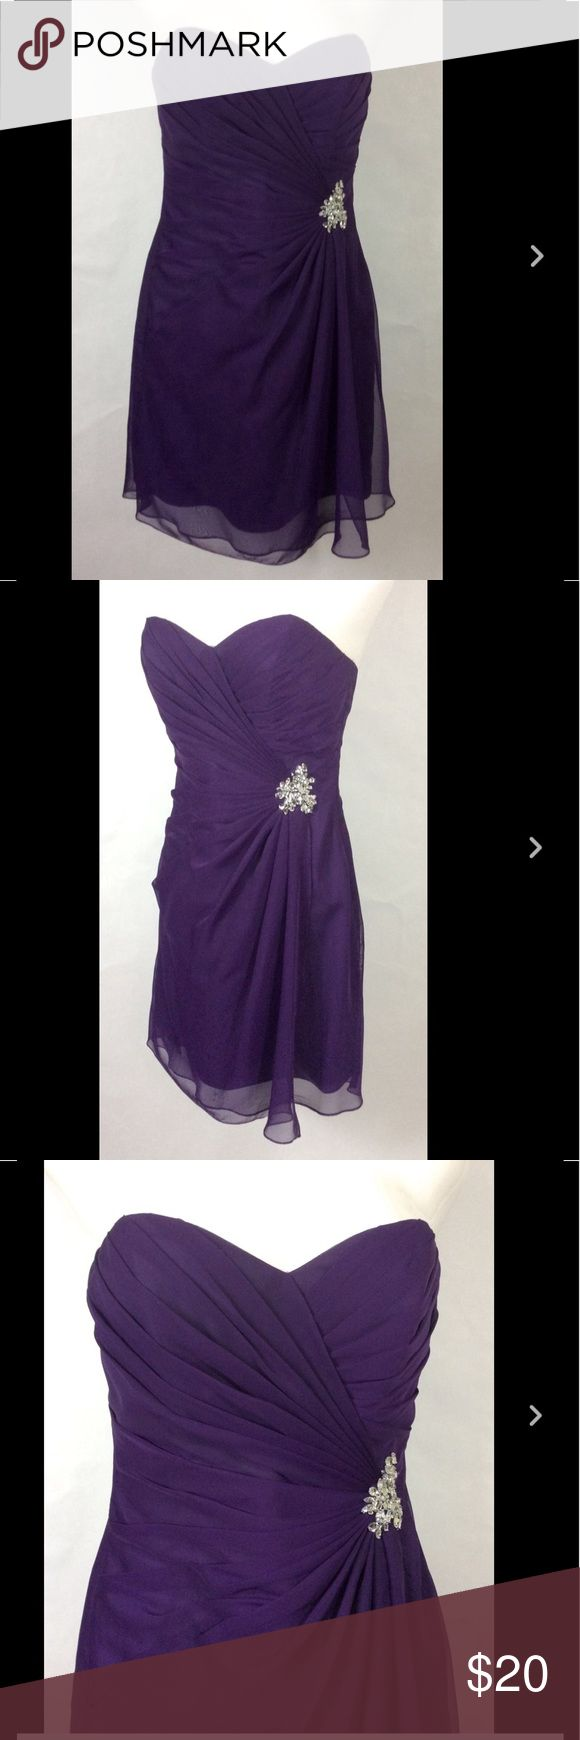 """New Womens purple Impression Bridal Dress /Size 12 New Womens purple Impression Bridal Dress / Lined Strapless Evening Gown Size 12  one of the optional spaghetti straps is broken  Chest 32"""" Waist 28"""" Length 25""""   Thanks for looking!  B737 Dresses Strapless"""